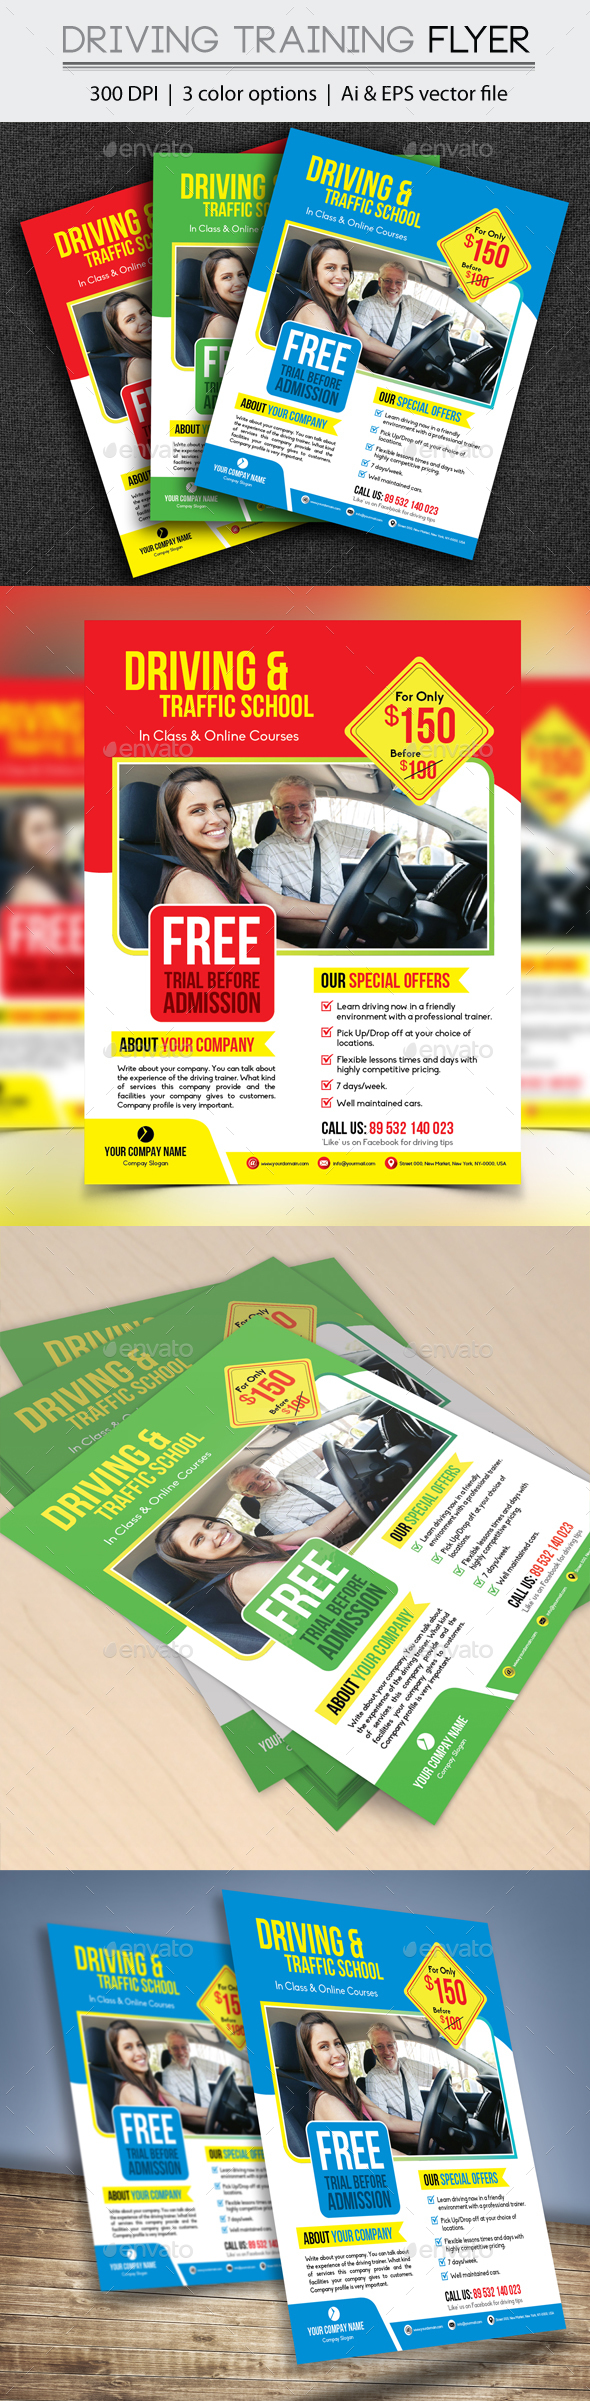 Driving Training Flyer - Flyers Print Templates